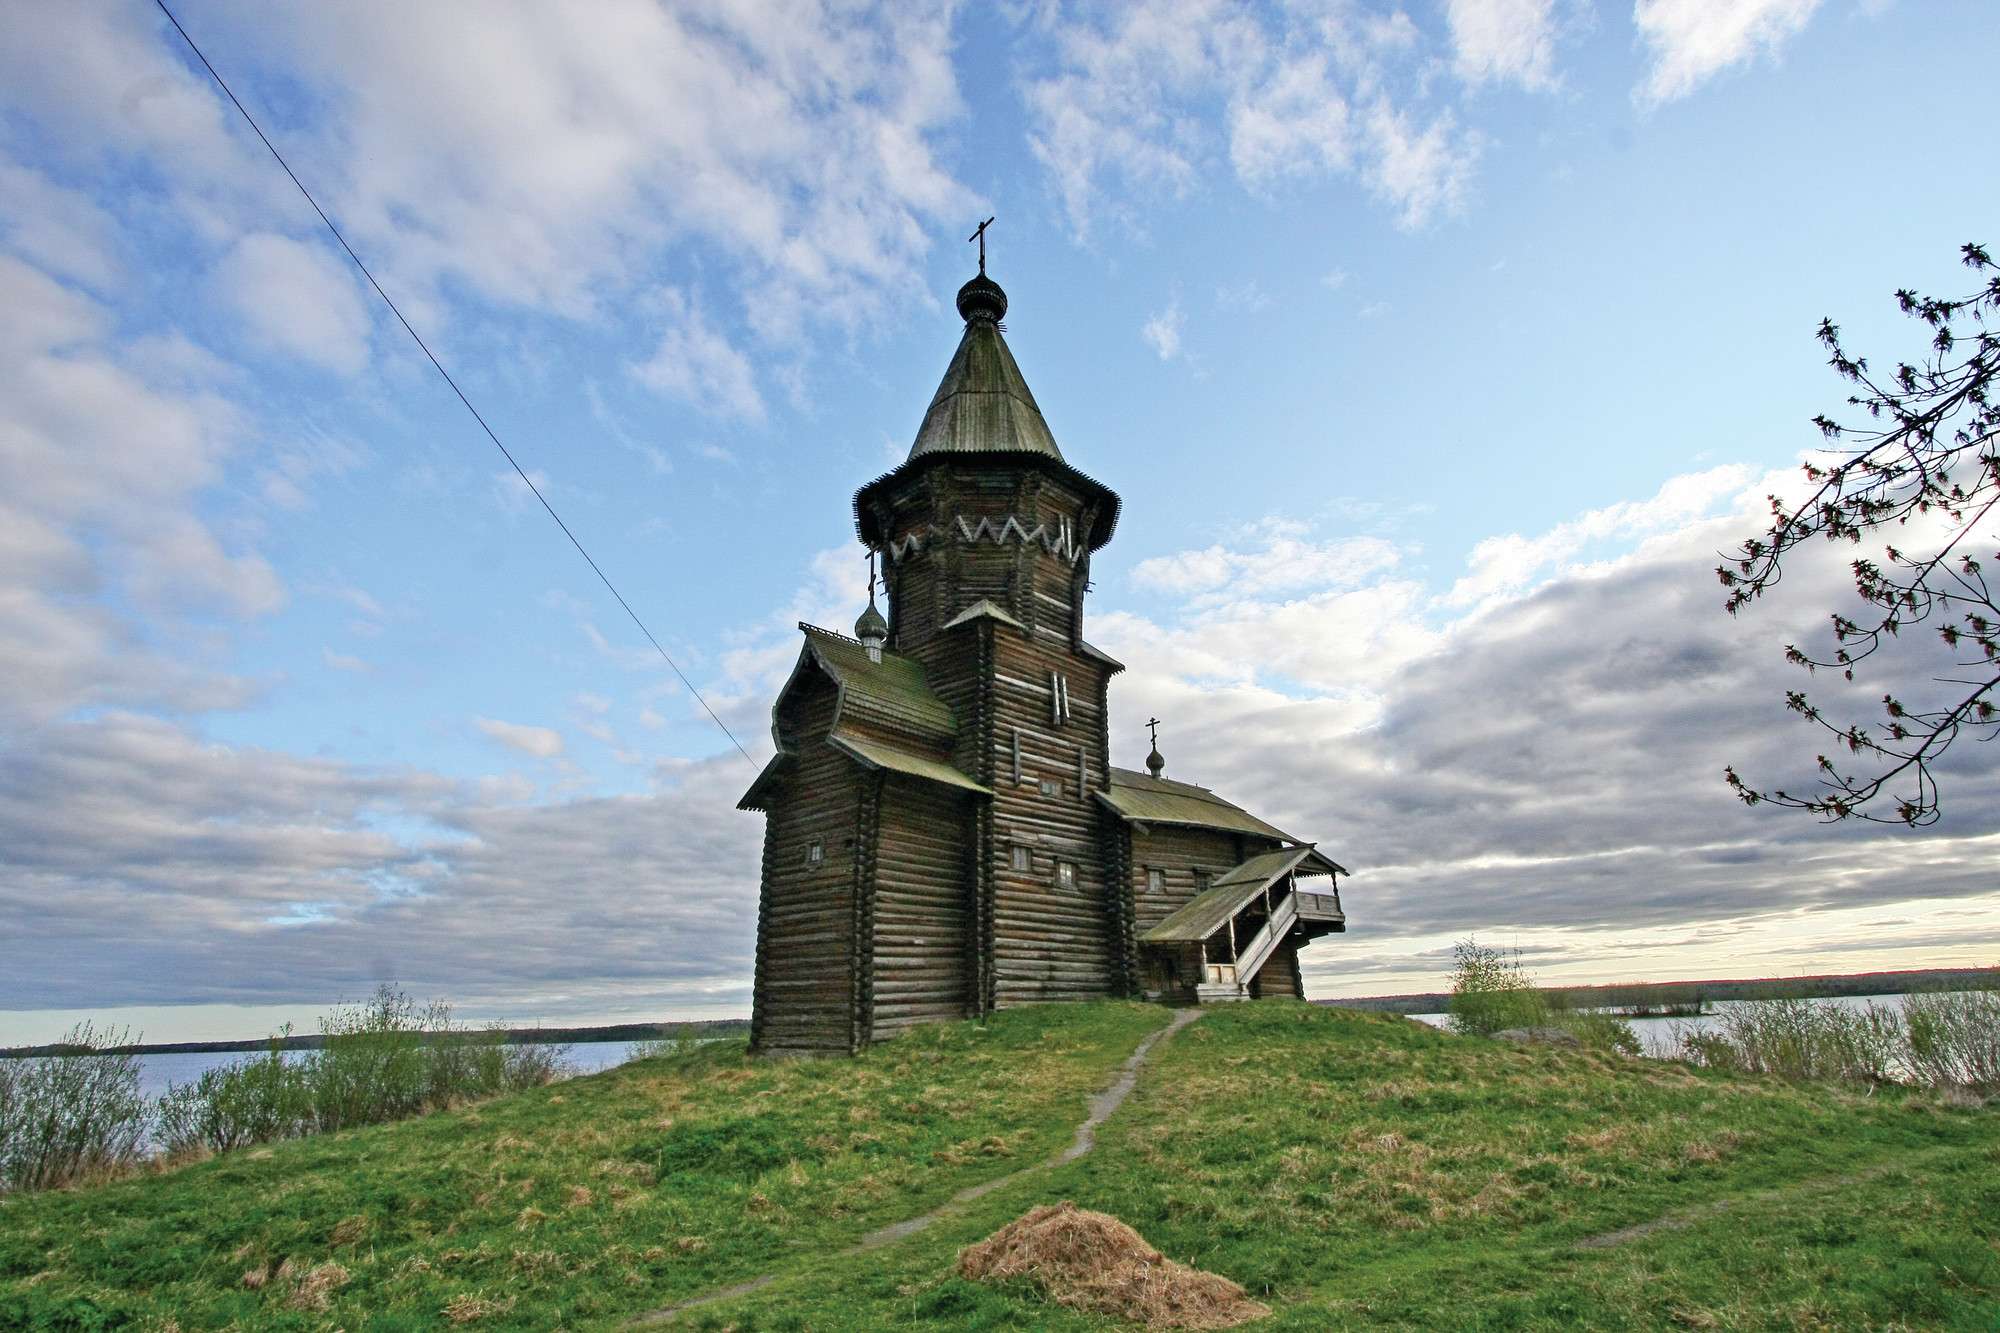 THE ASSOCIATED PRESSThe Dormition Church, widely seen as one of the most remarkable examples of Northern Russia's wooden architecture, was destroyed by a fire on Friday.